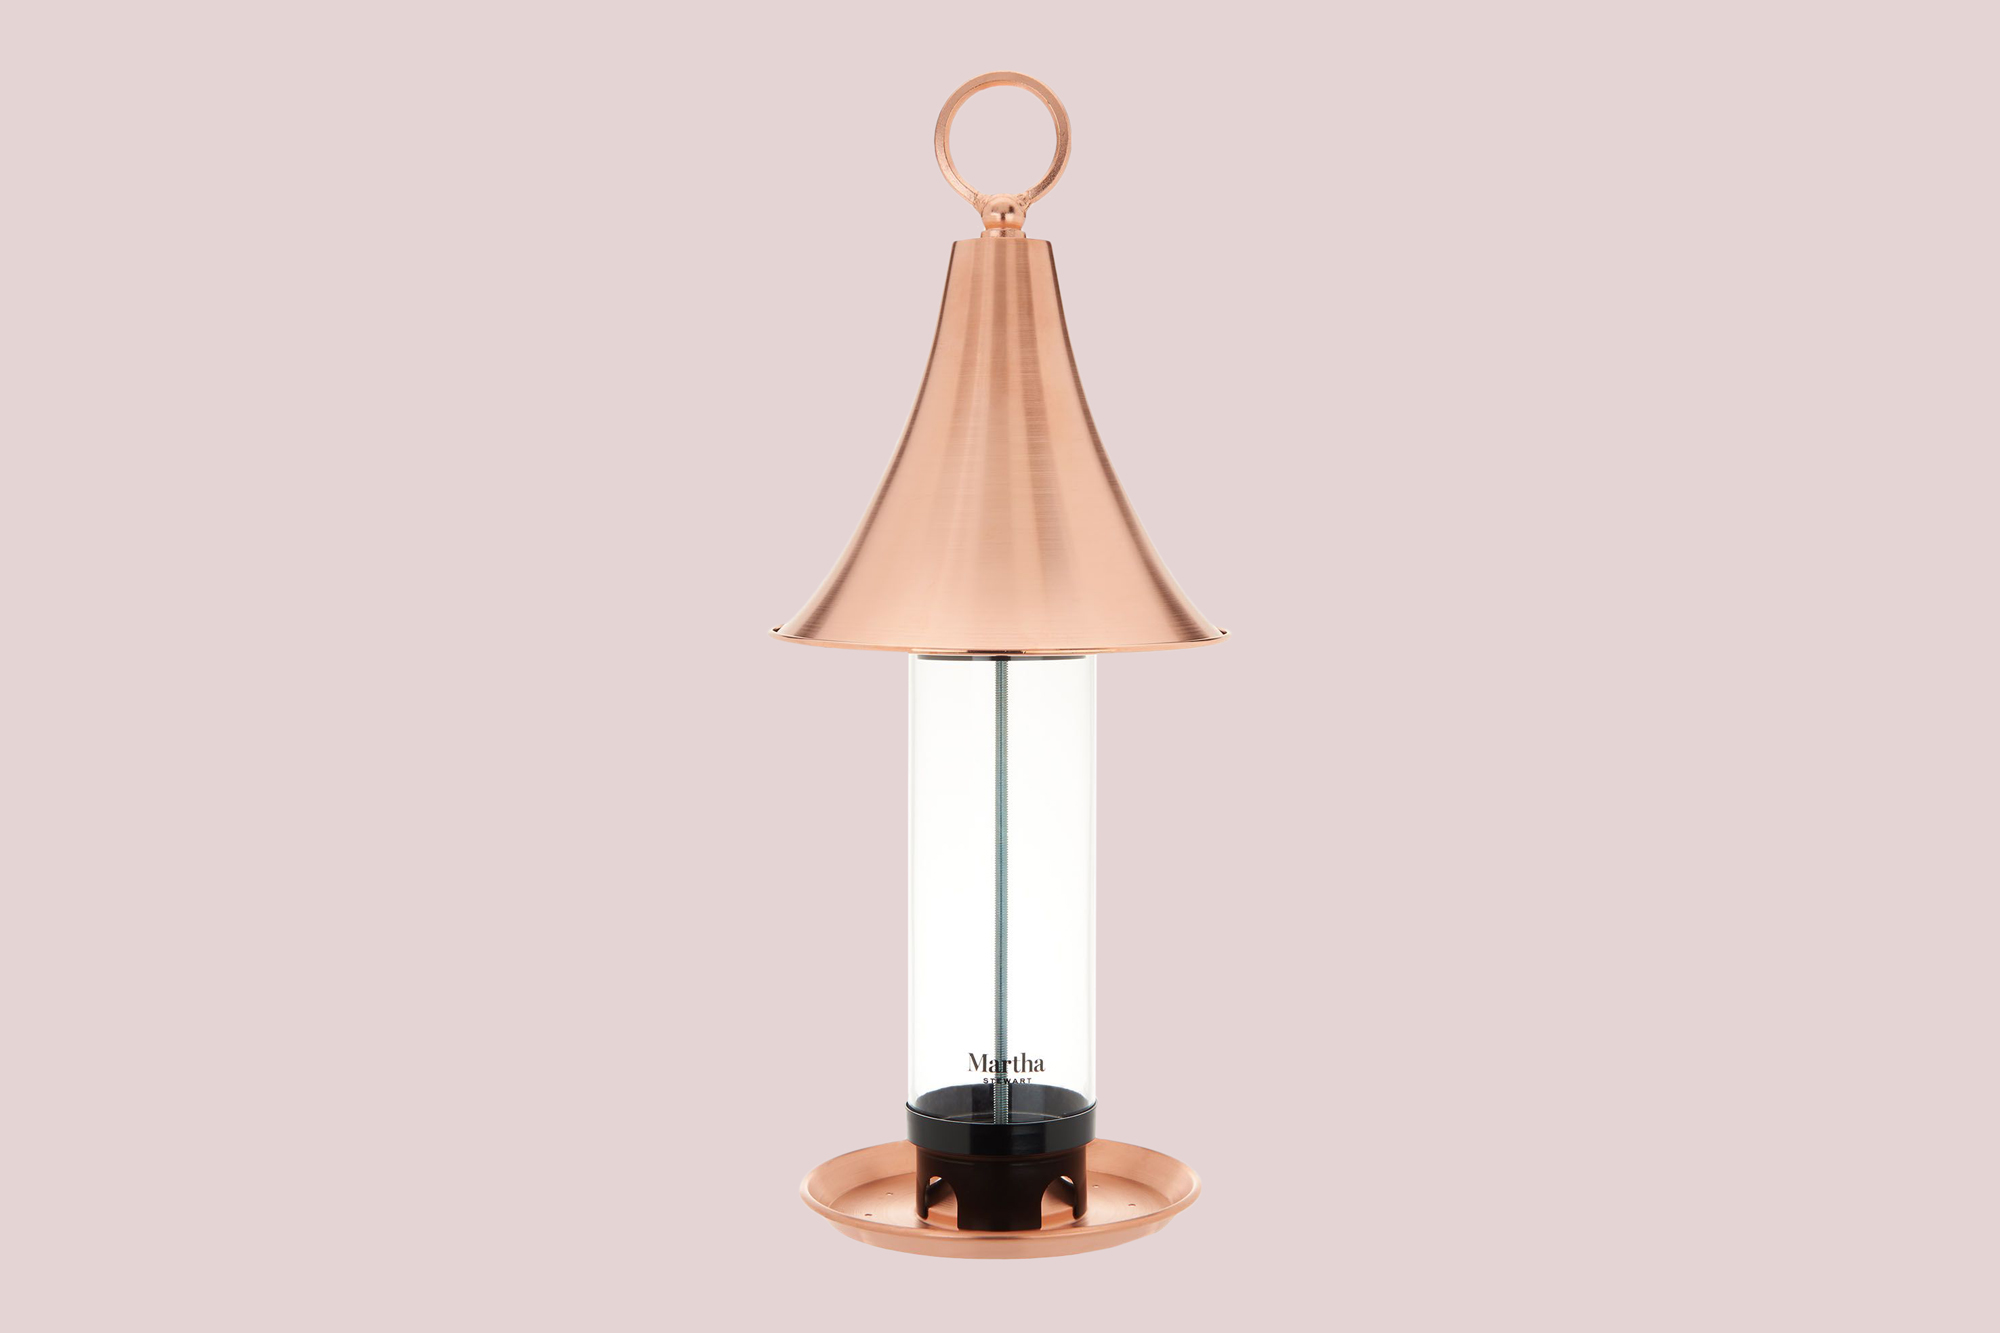 Martha Stewart Copper Bird Feeder